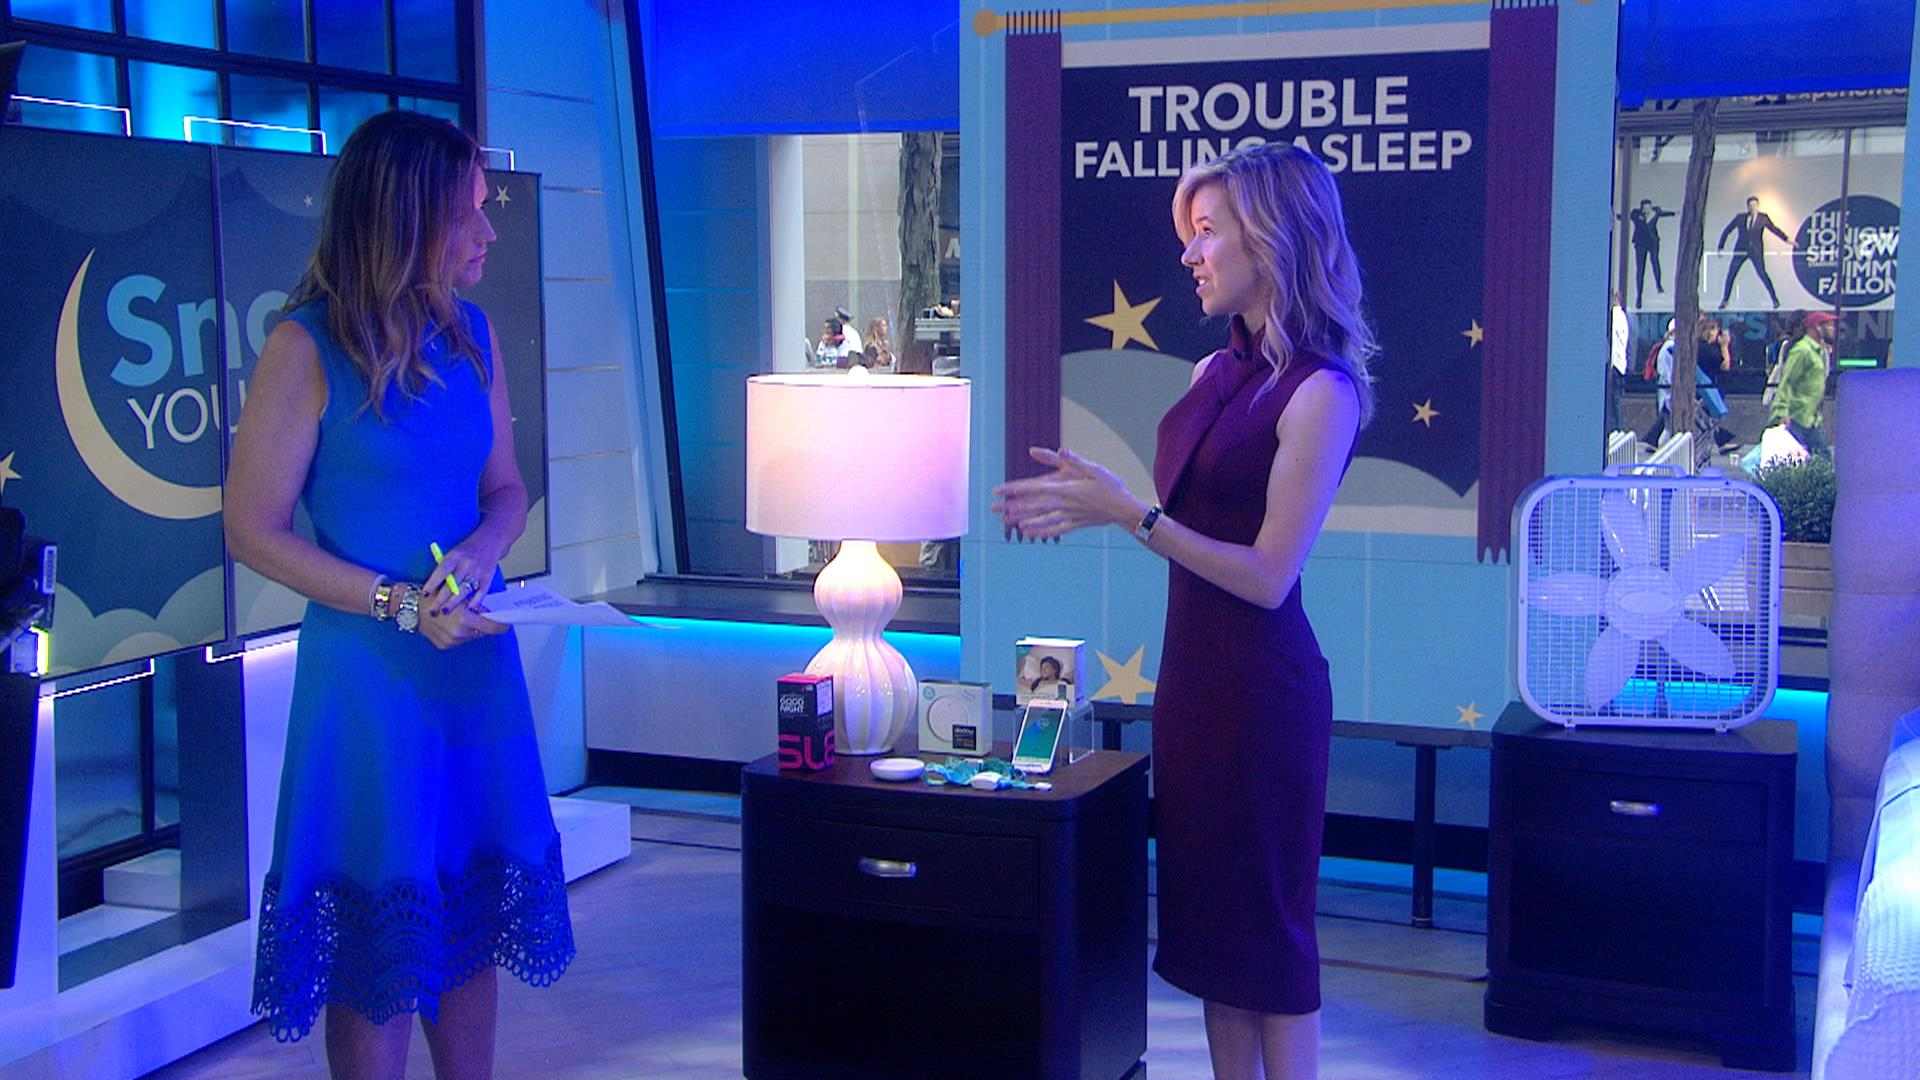 Too little sleep? Expect slow reflexes the next day